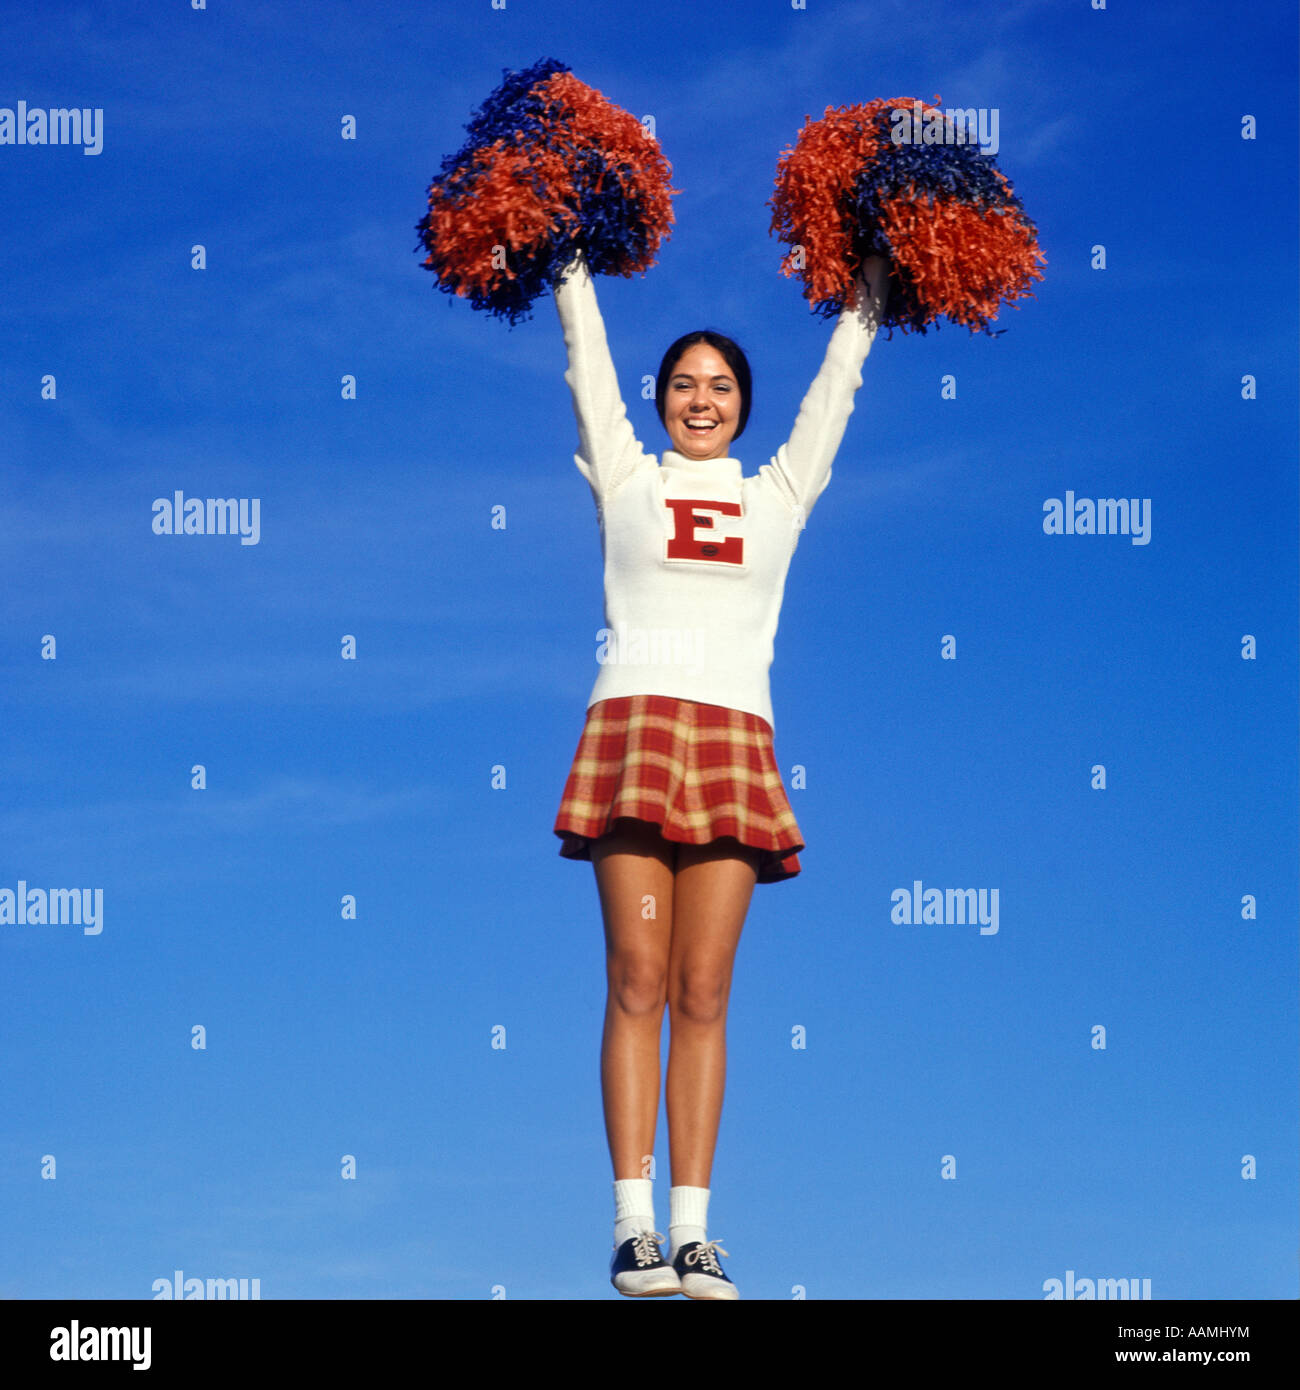 2c4e273c63 1960s TEEN GIRL CHEERLEADER FULL FIGURE HEAD TO TOE SADDLE OXFORD SHOES  PLAID SHORT SKIRT POMPOMS